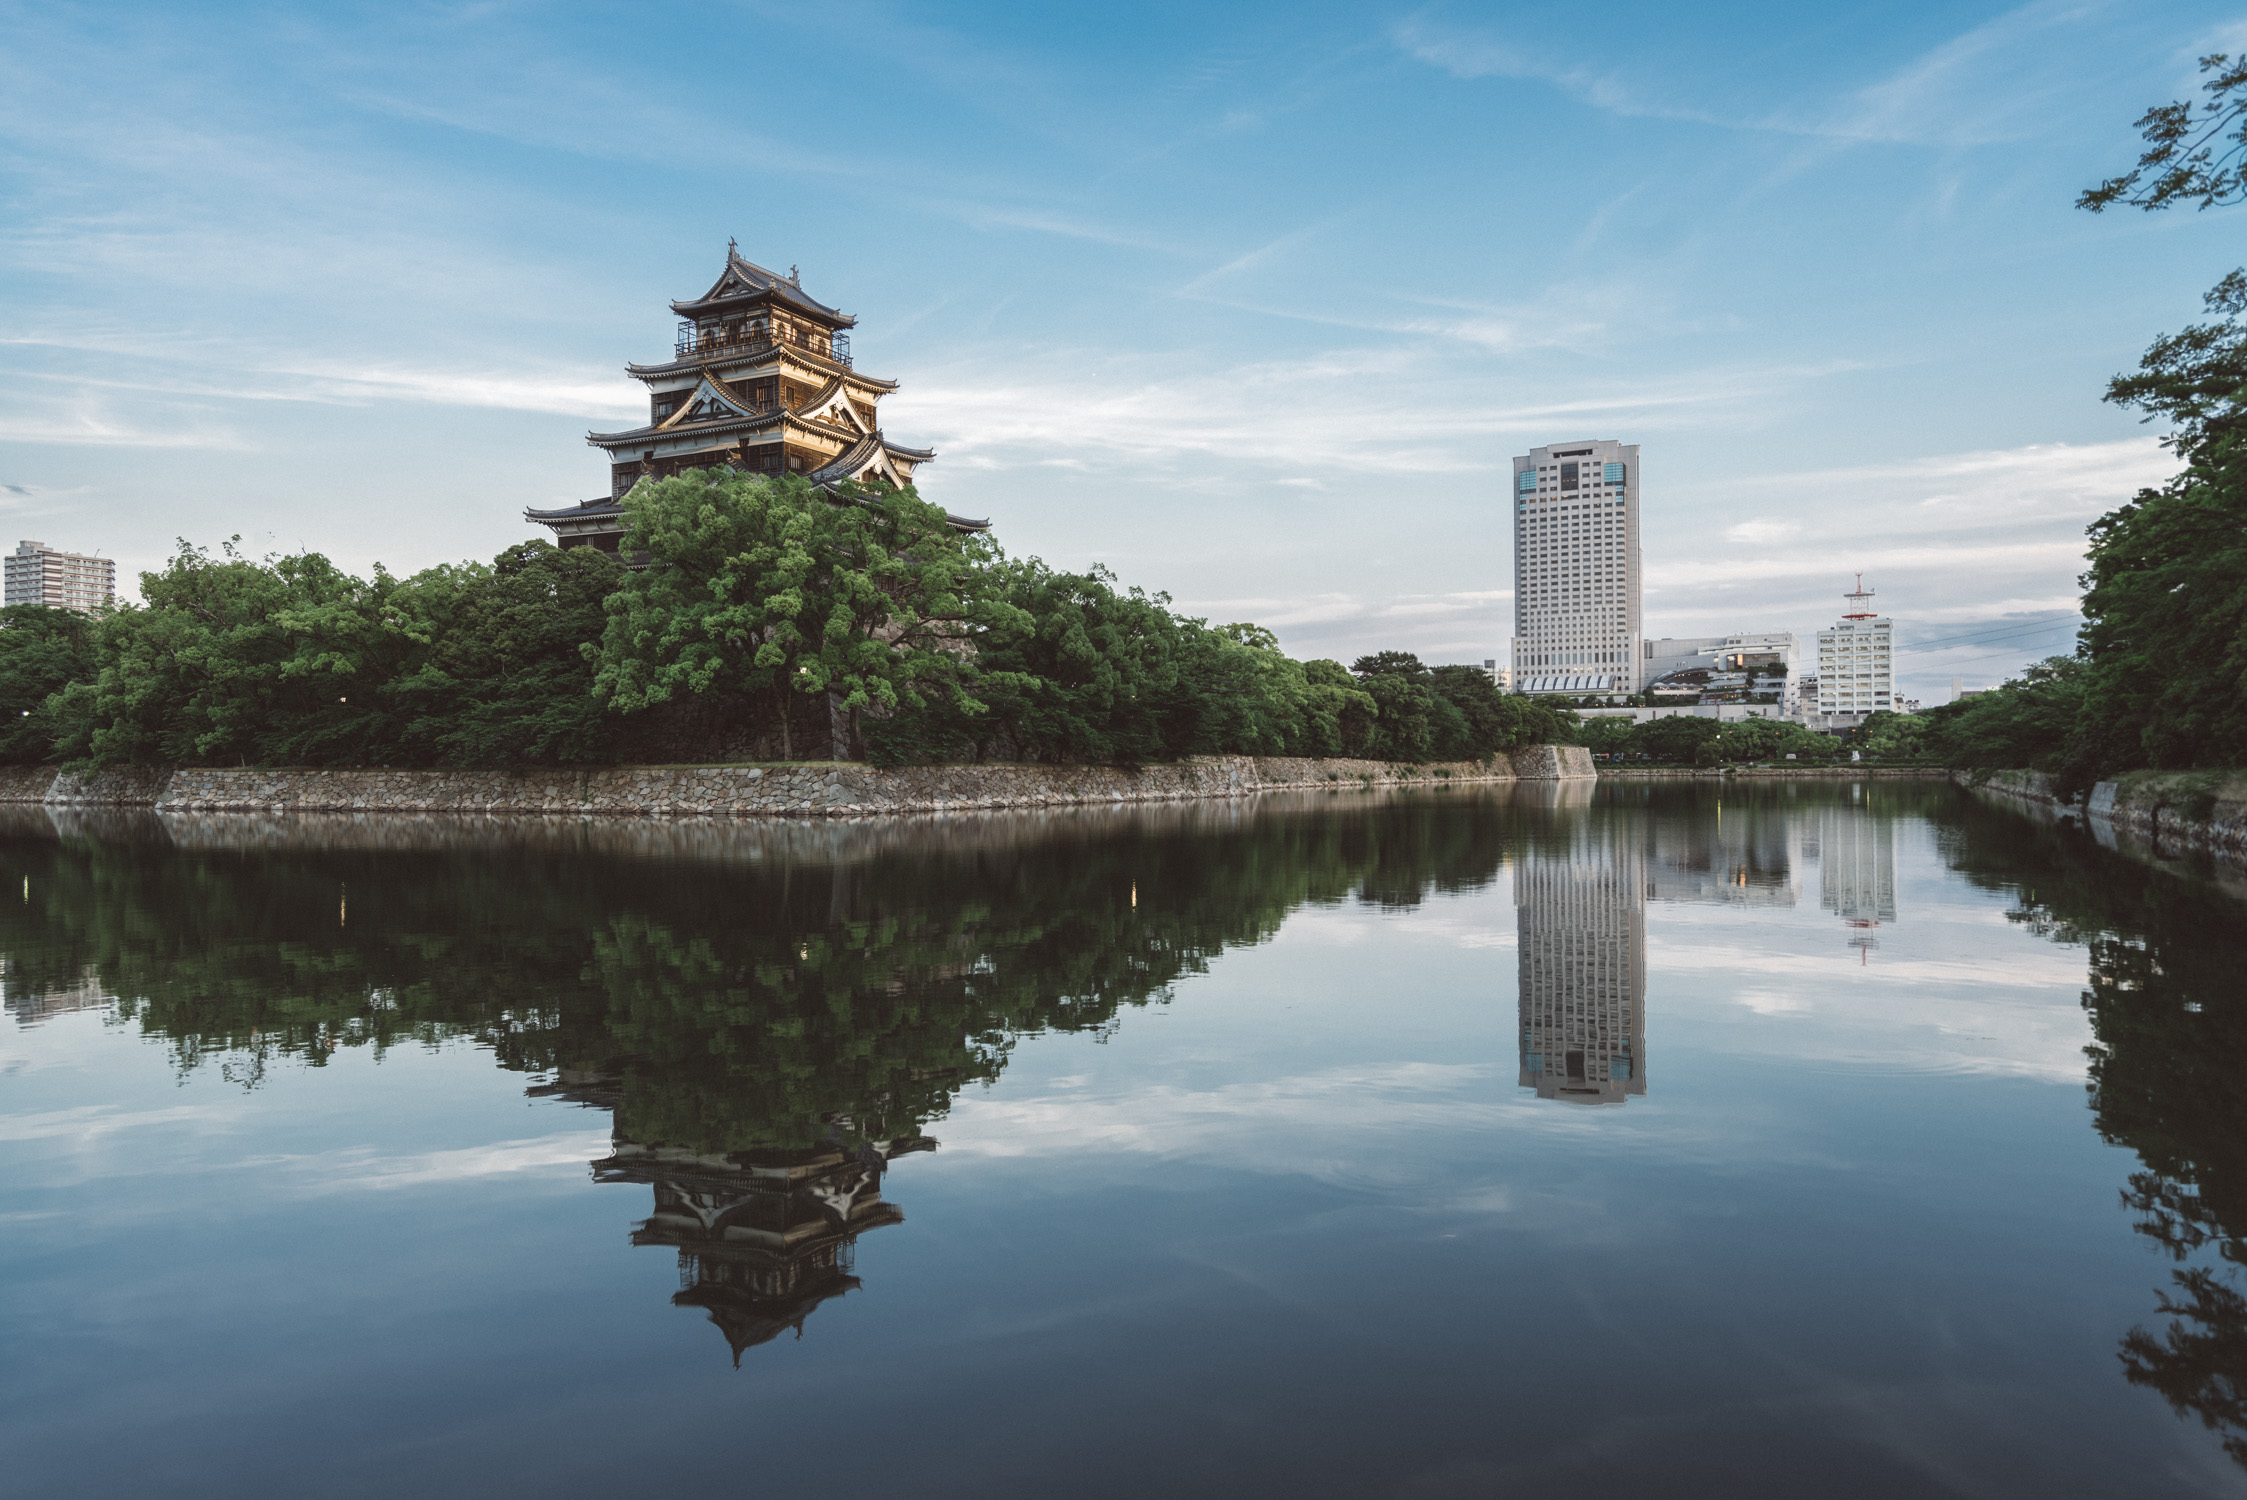 hiroshima castle reflexion [David Tan]